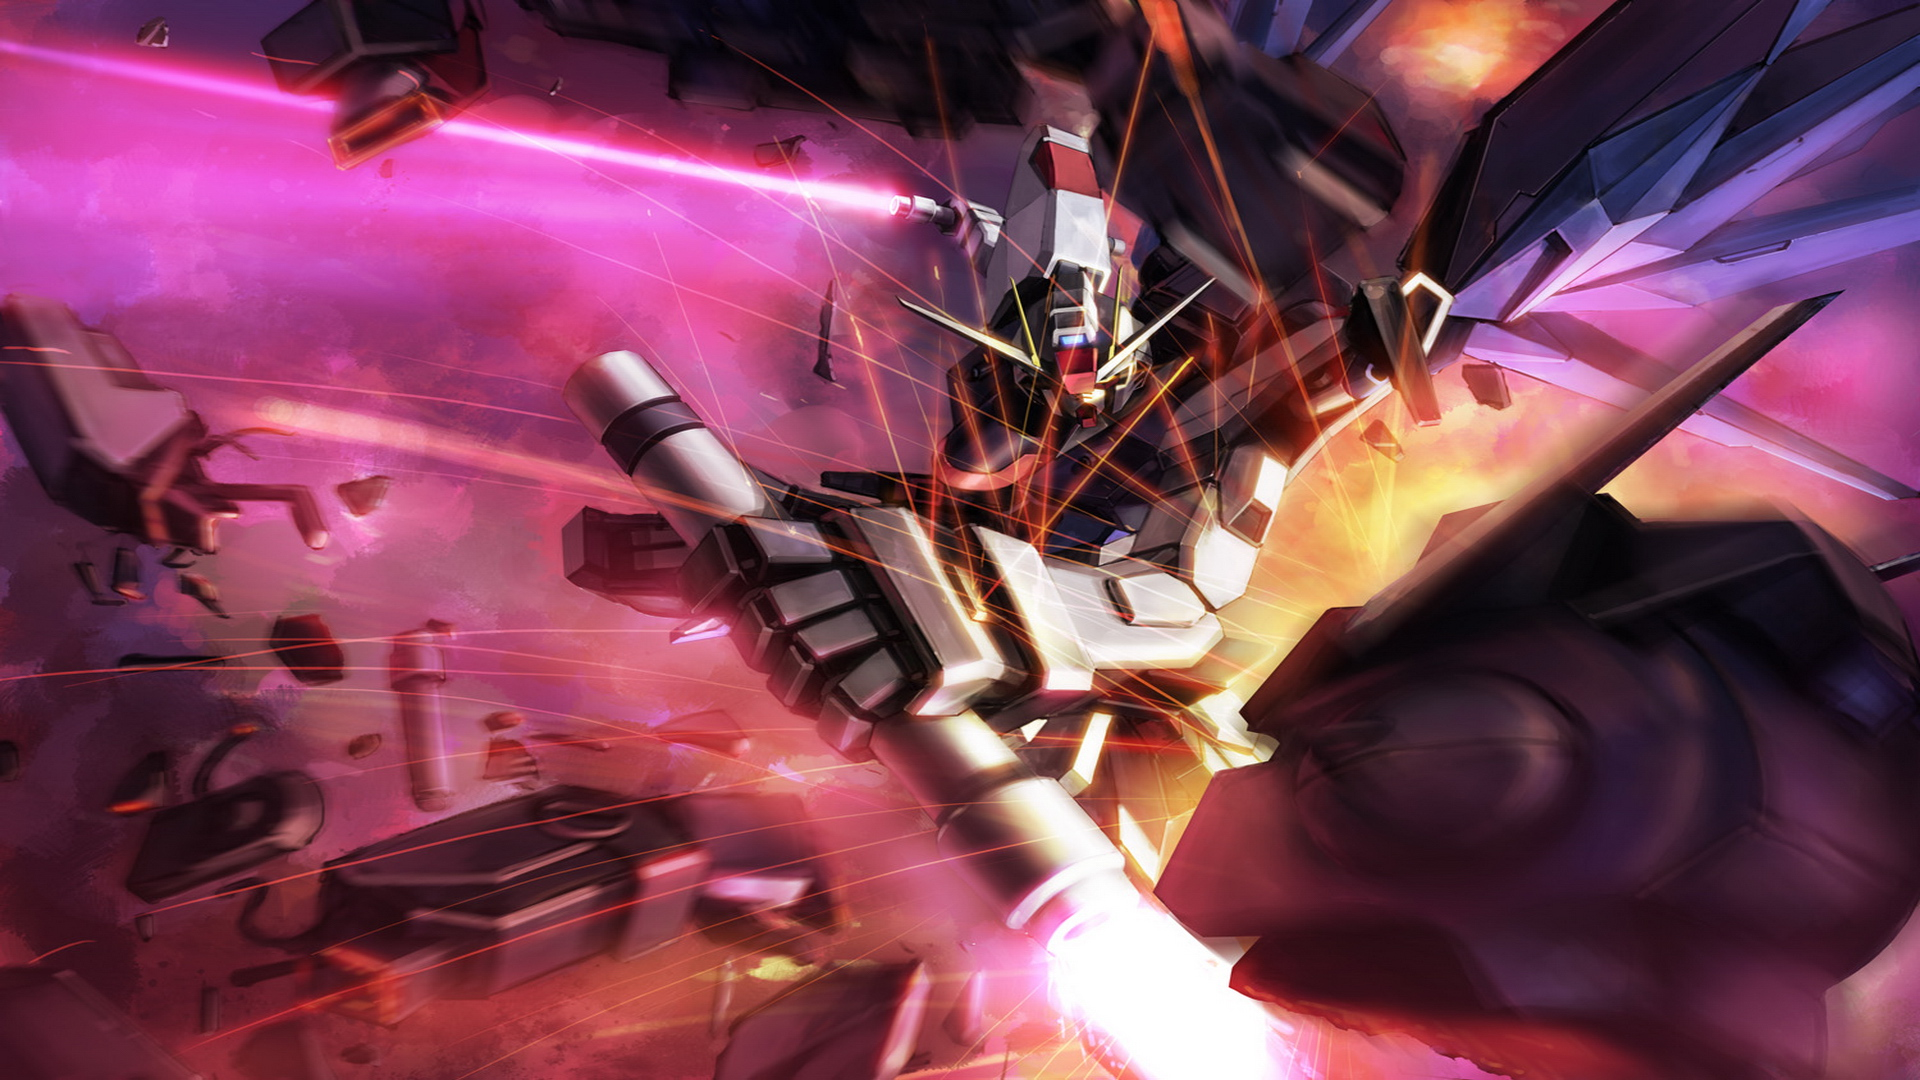 Wallpapers HD Desktop Wallpapers Gundam Wallpapers 52jpg 1920 x 1920x1080